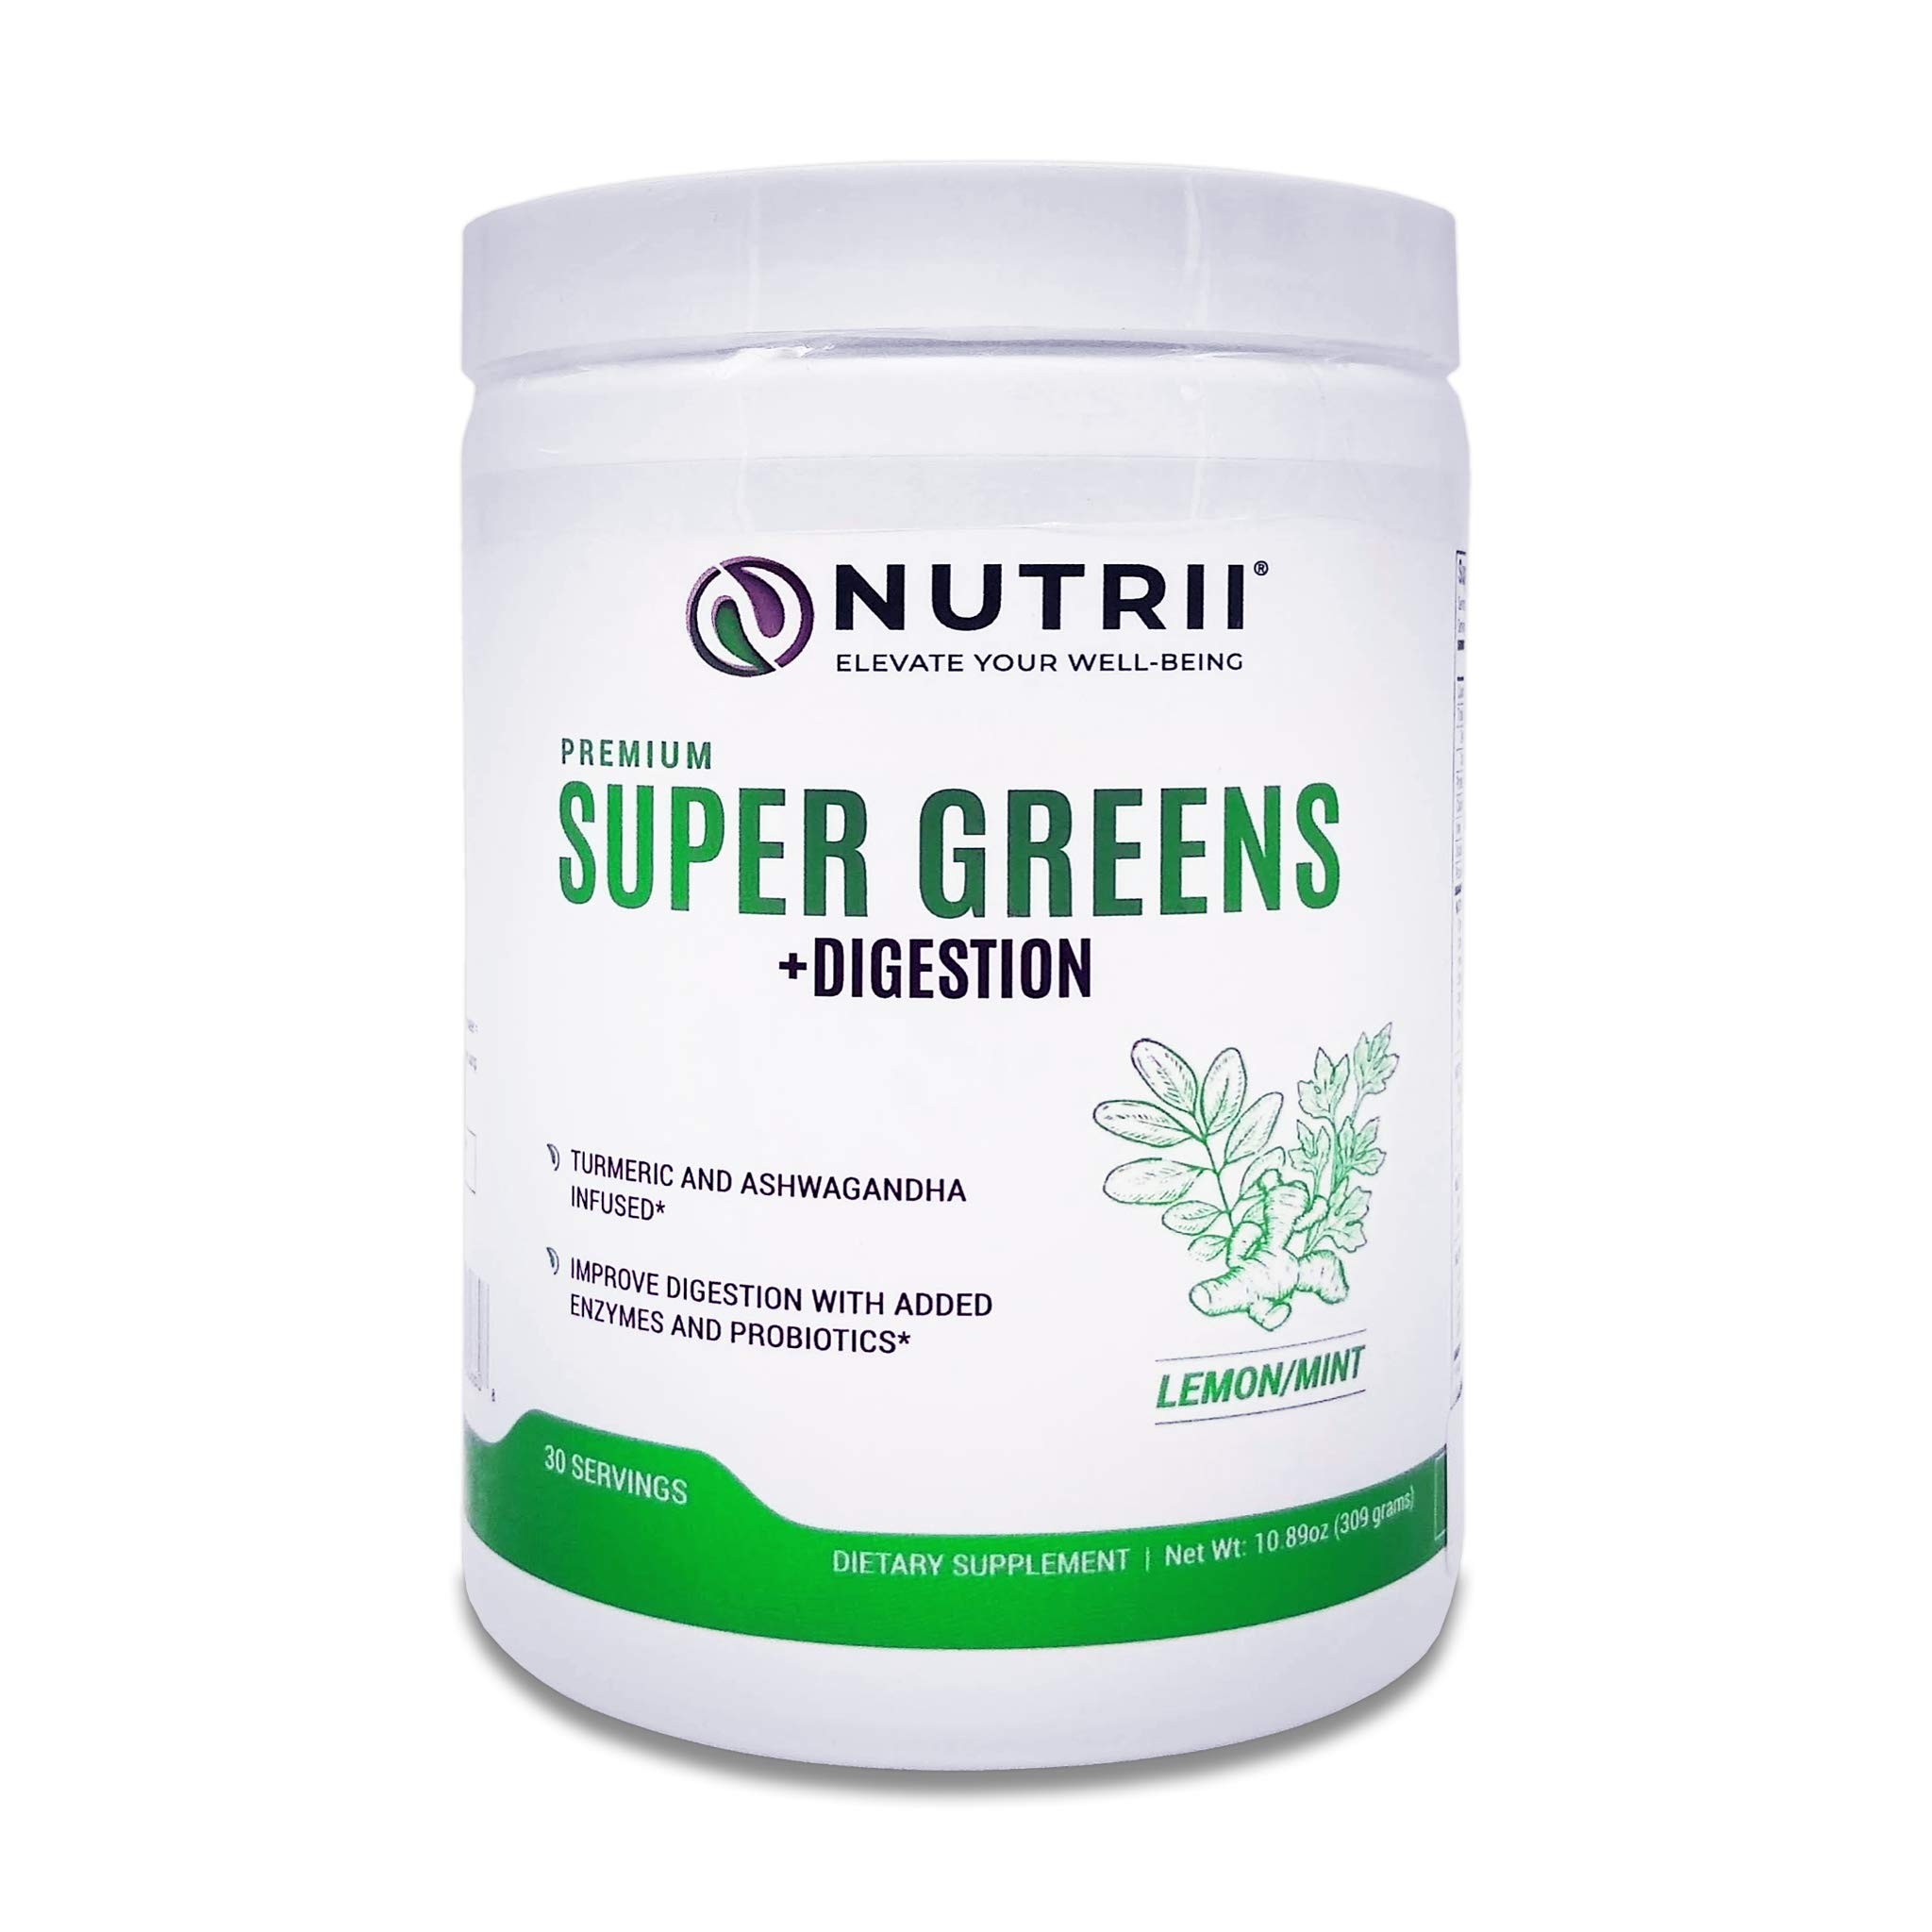 Nutrii - #1 Organic Super Greens + Digestion, Turmeric and Ashwagandha Infused, Veggie Superfood, Antioxidant, Vegan Supplement, Amazing Lemon/Mint Flavor, Organic Stevia Leaf (10.89oz, 30 Serv) by Nutrii